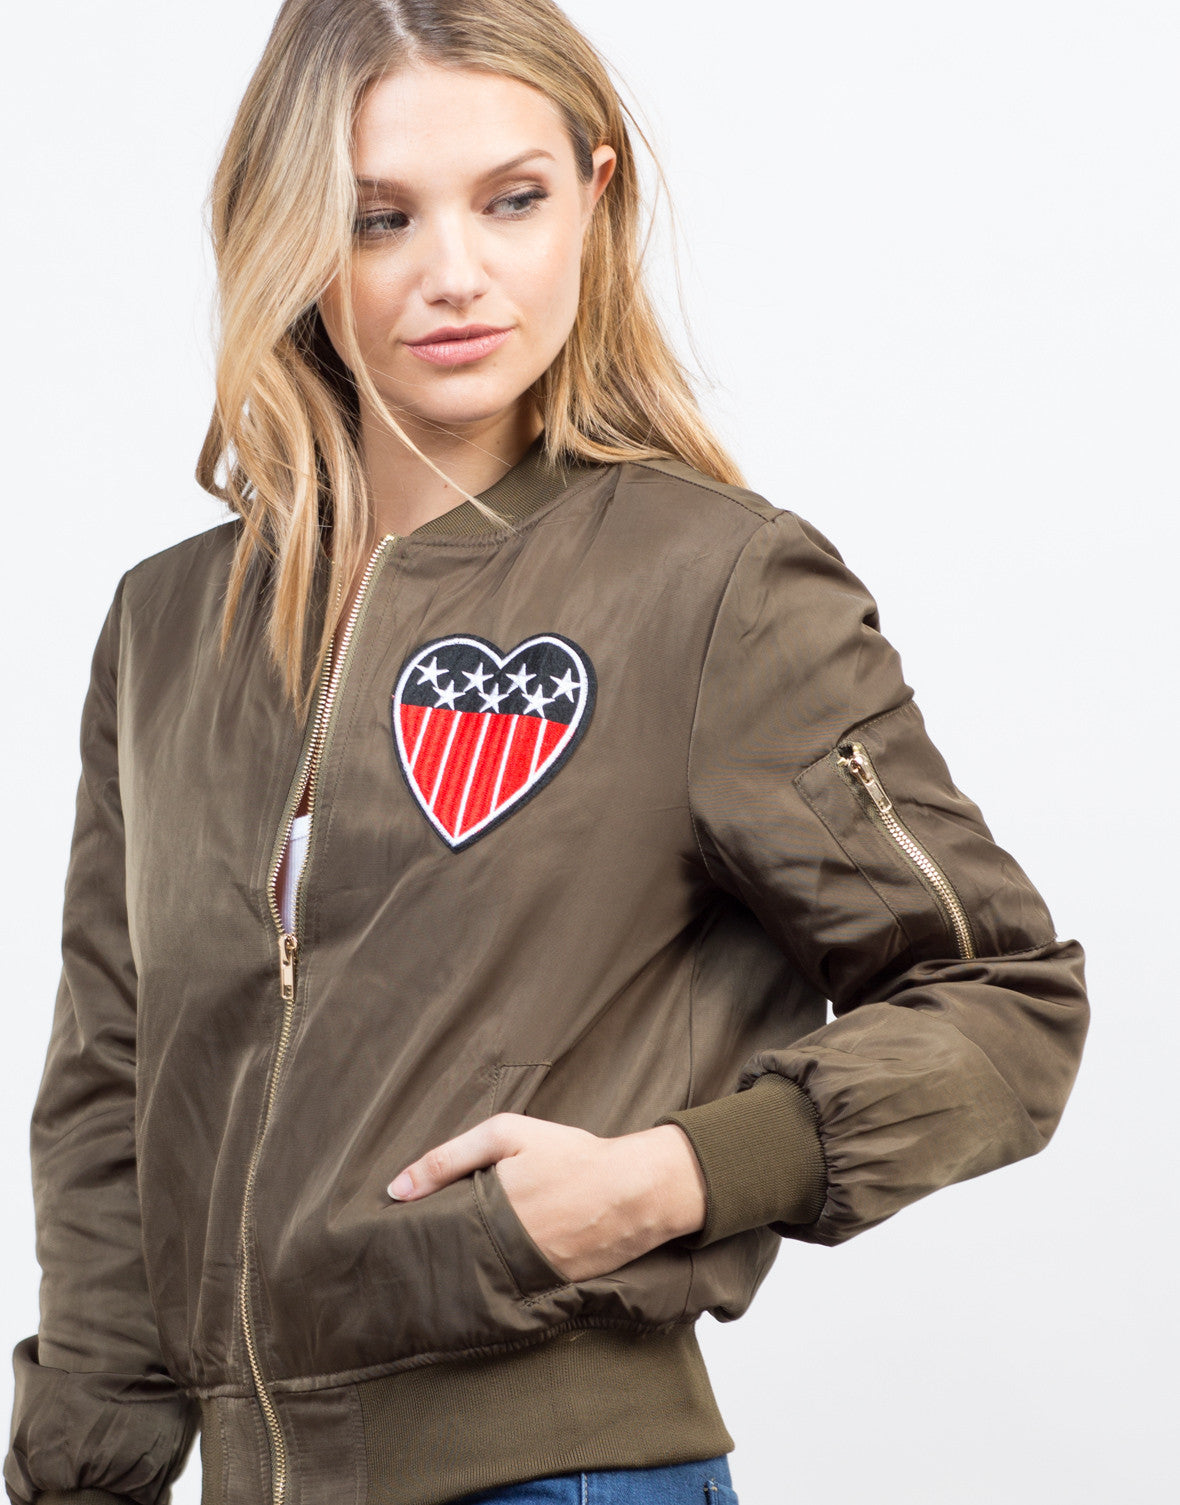 Detail of Patriotic Bomber Jacket